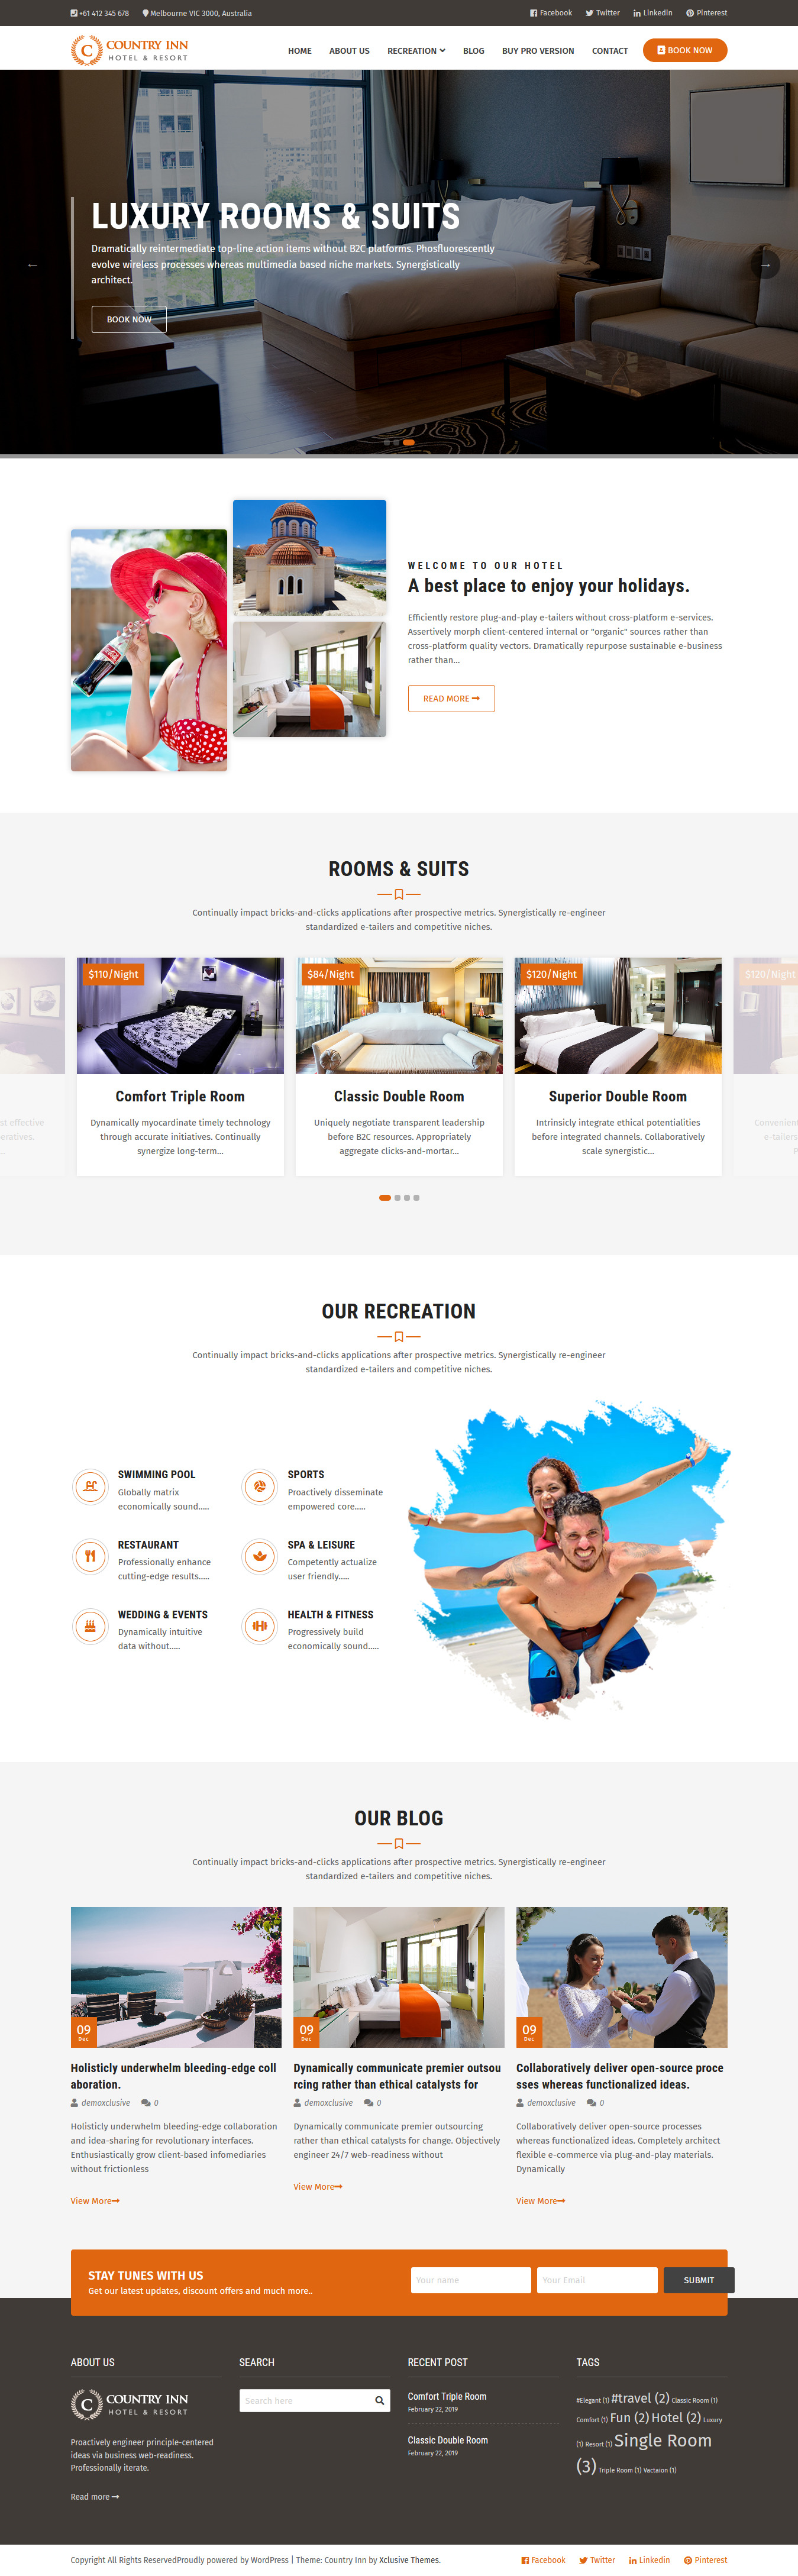 countryinn best free home rental property wordpress theme - 10+ Best Free Home Rental and Property WordPress Themes